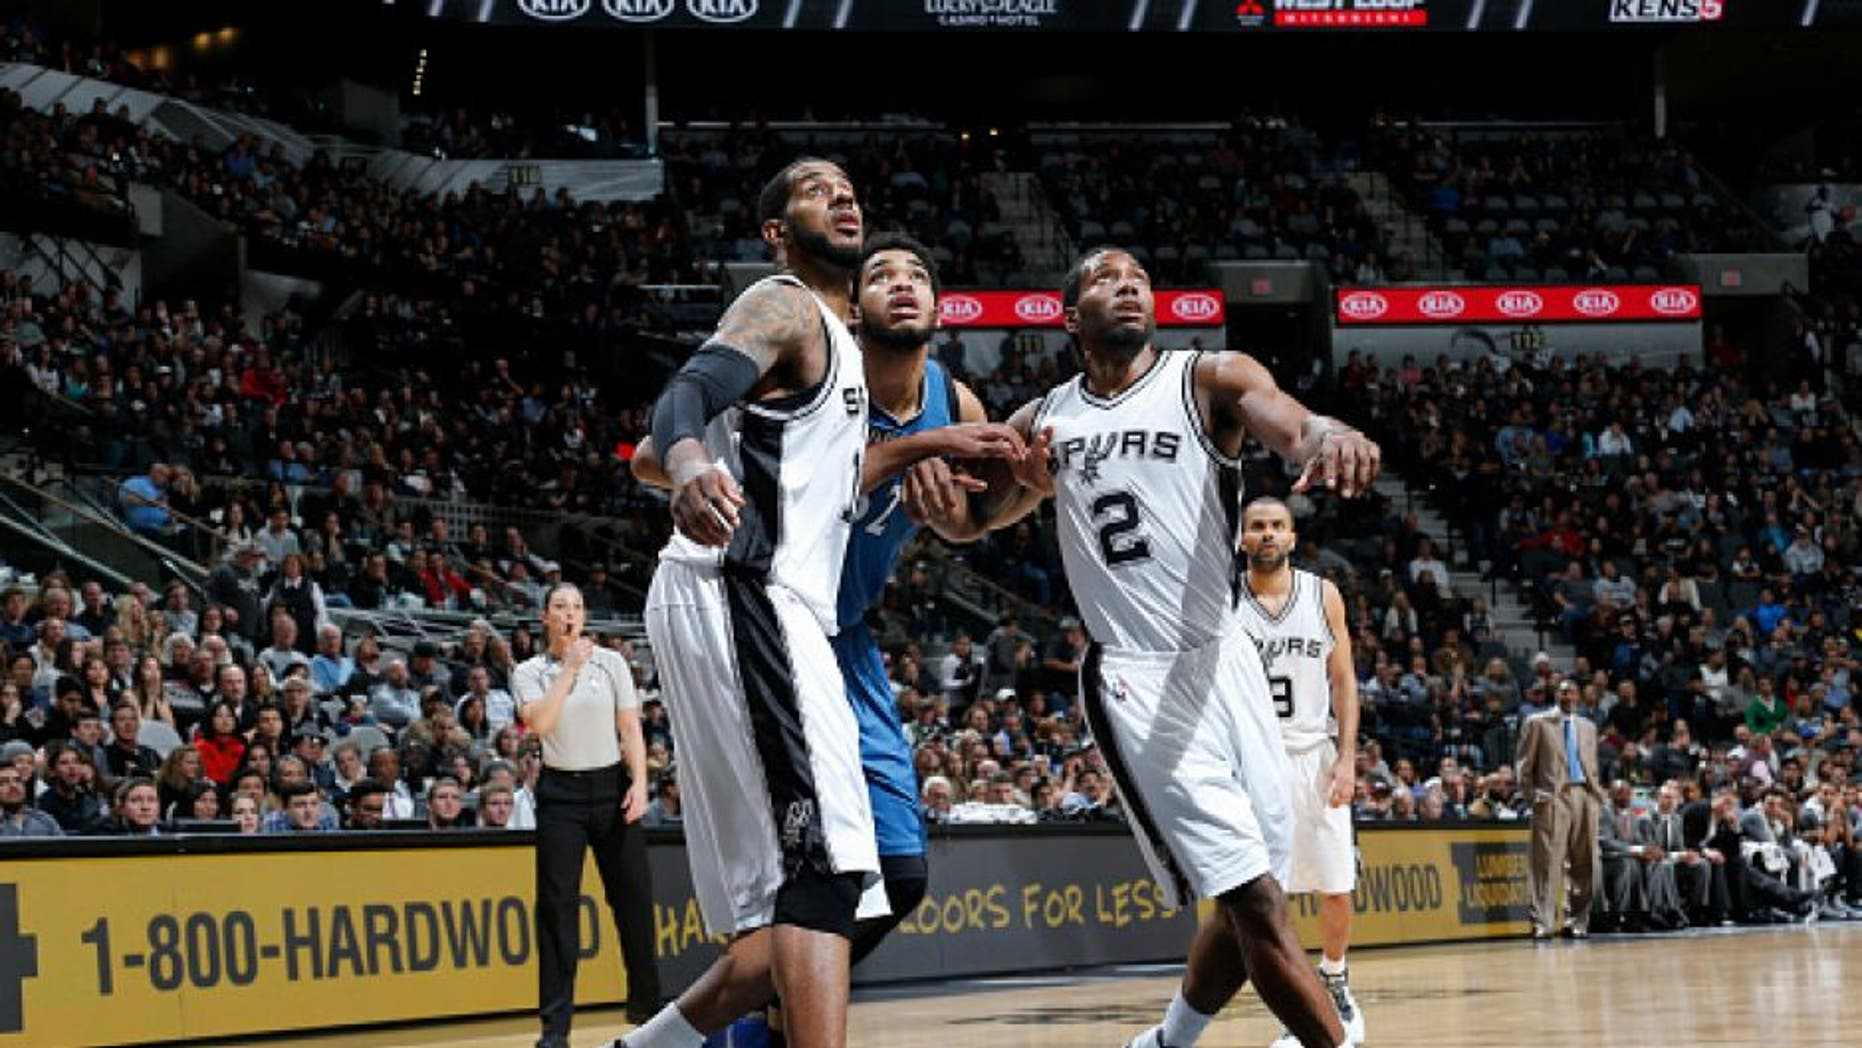 SAN ANTONIO, TX - DECEMBER 28: LaMarcus Aldridge #12 of the San Antonio Spurs and Kawhi Leonard #2 of the San Antonio Spurs box out against Karl-Anthony Towns #32 of the Minnesota Timberwolves on December 28, 2015 at the AT&T Center in San Antonio, Texas. NOTE TO USER: User expressly acknowledges and agrees that, by downloading and or using this photograph, user is consenting to the terms and conditions of the Getty Images License Agreement. Mandatory Copyright Notice: Copyright 2015 NBAE (Photos by Chris Covatta/NBAE via Getty Images)